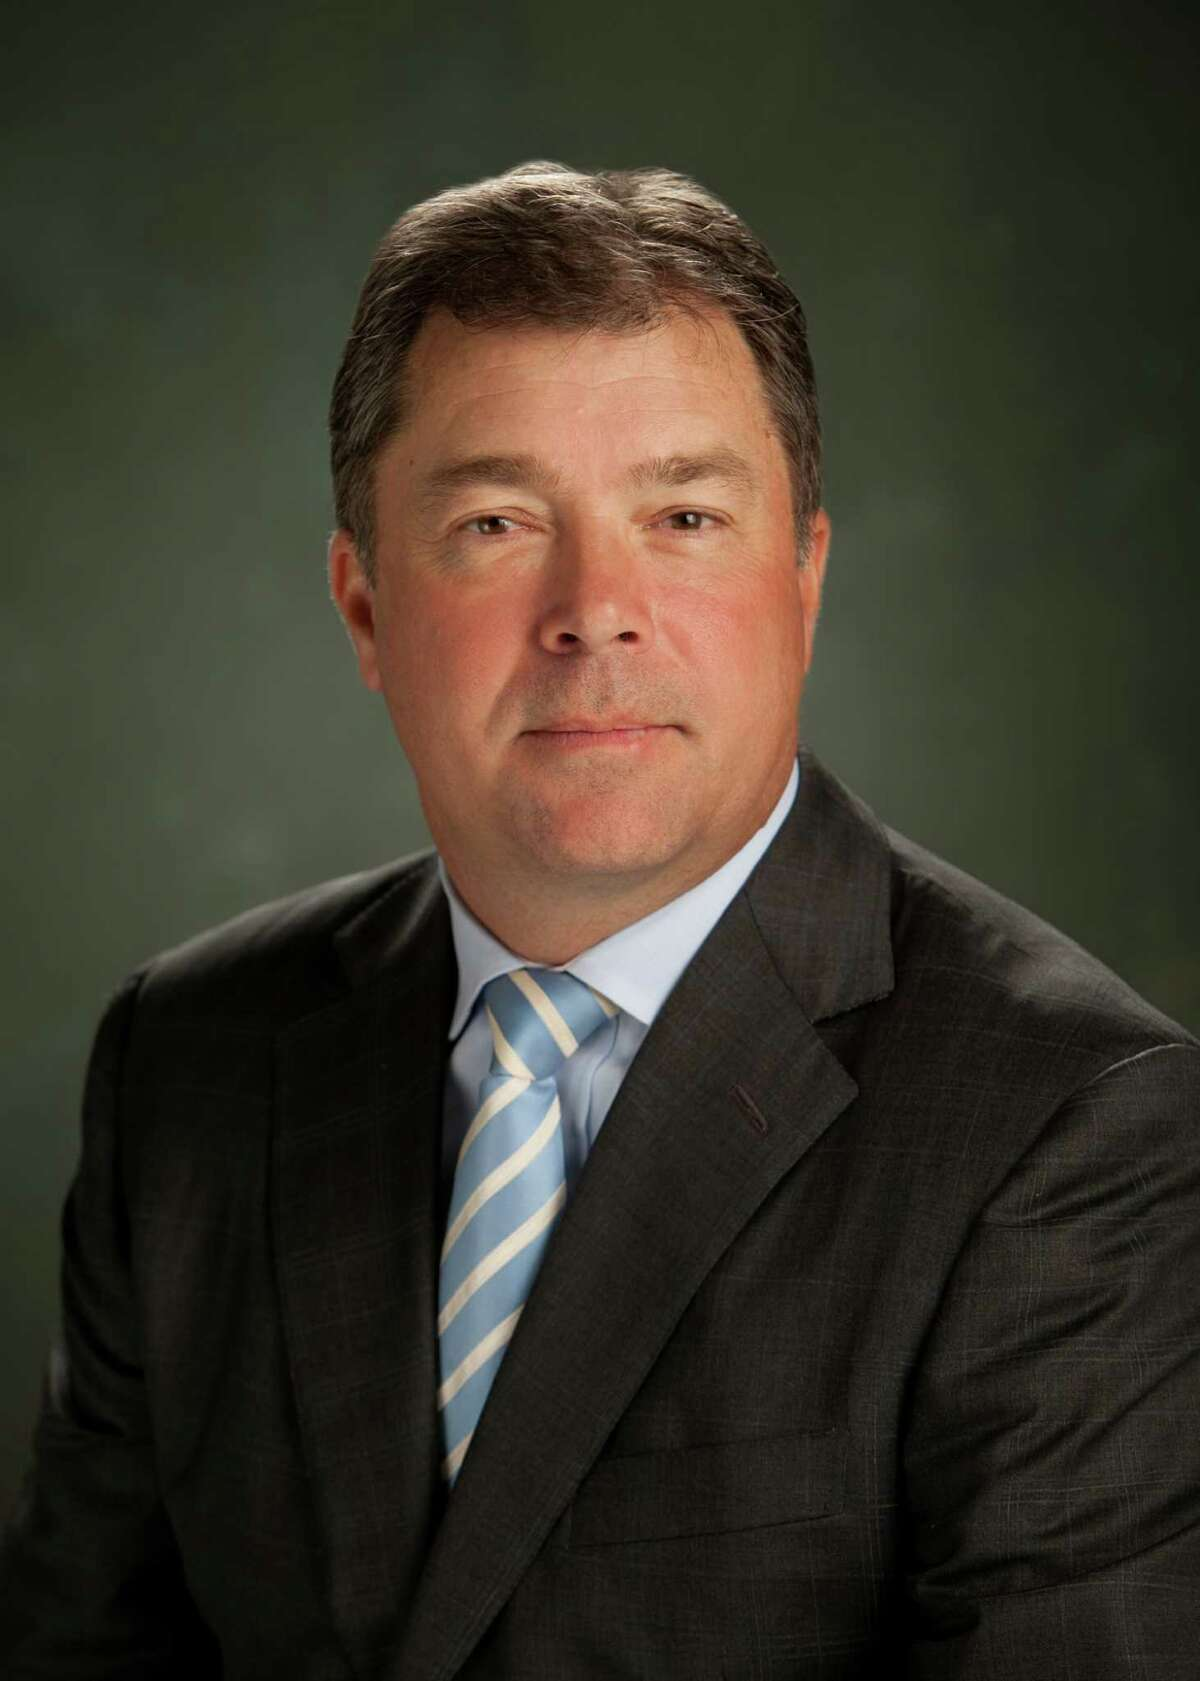 Jeff Spath, 2014 president of the Society of Petroleum Engineers, is vice president of industry affairs for oil field services company Schlumberger in Houston. (Society of Petroleum Engineers photo)